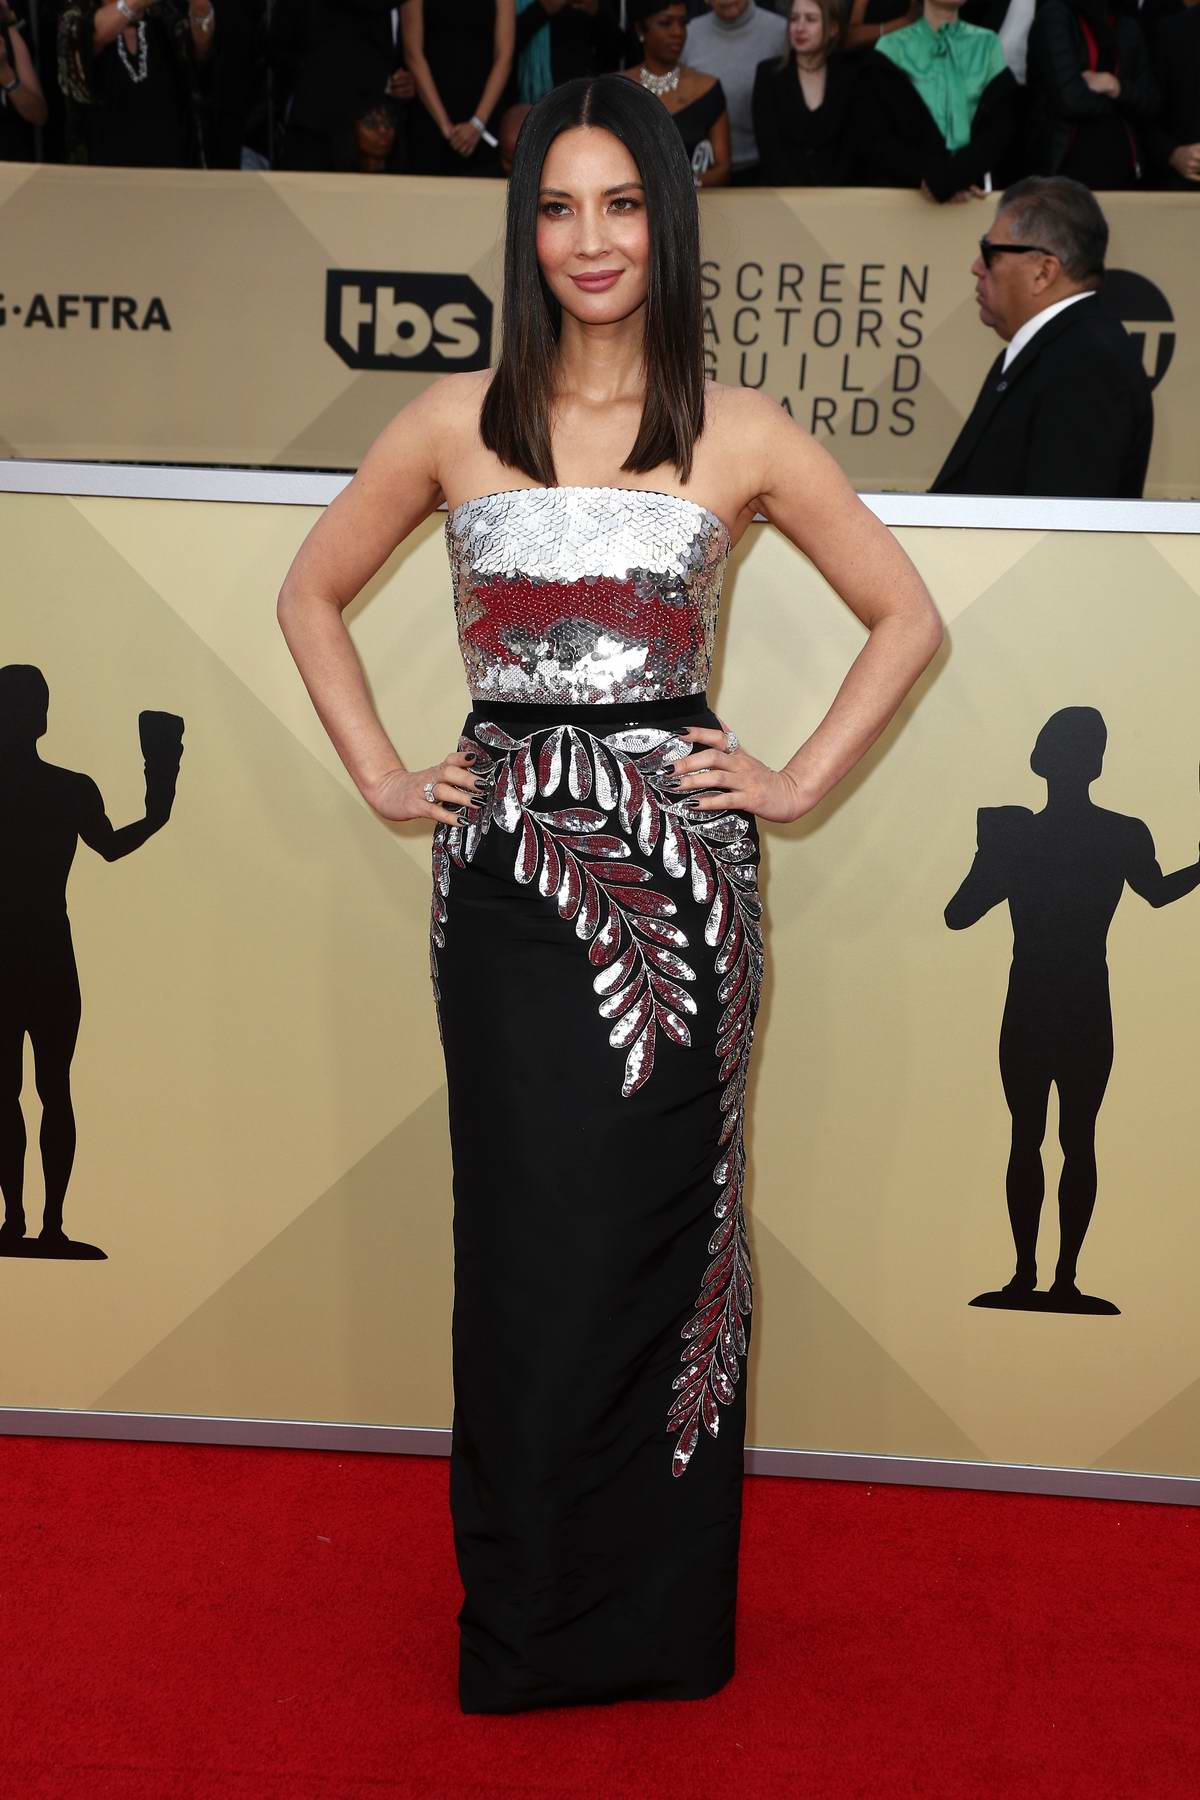 Olivia Munn attends the 24th Annual Screen Actors Guild (SAGs) Awards 2018 at The Shrine Auditorium in Los Angeles